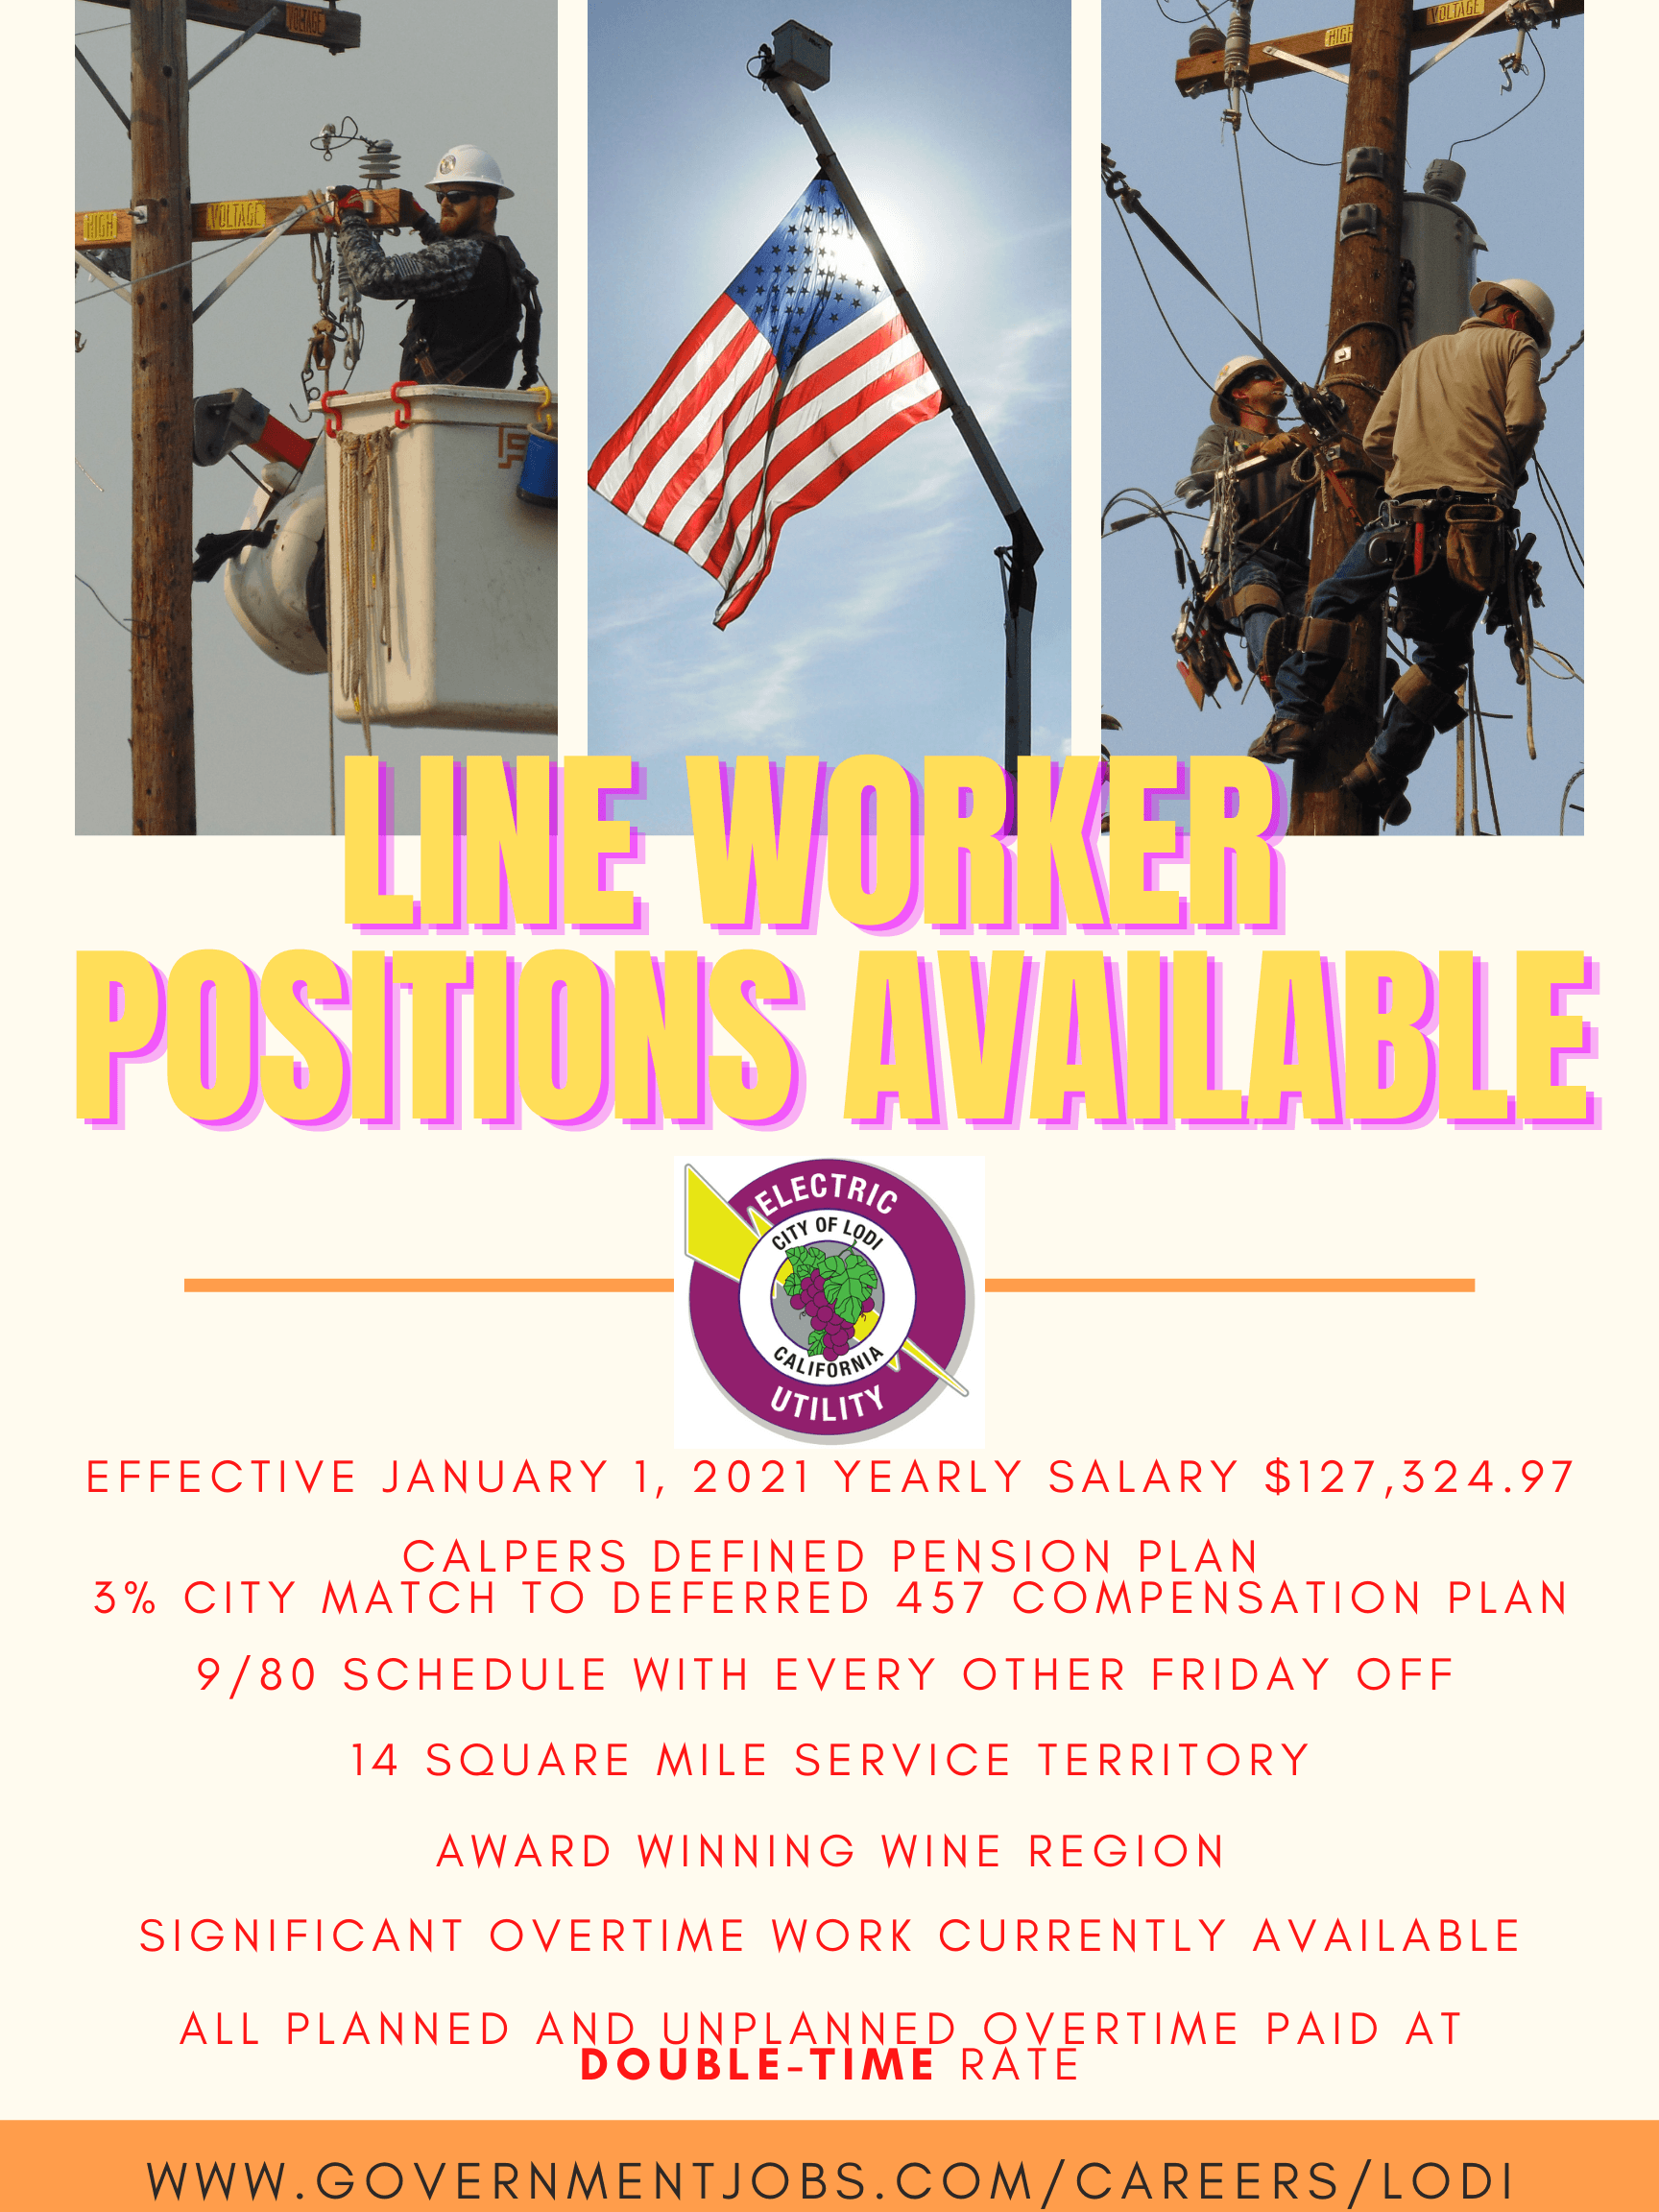 Are you a Lineman/Linewoman looking for a great place to work?  Come join Lodi Electric. We service